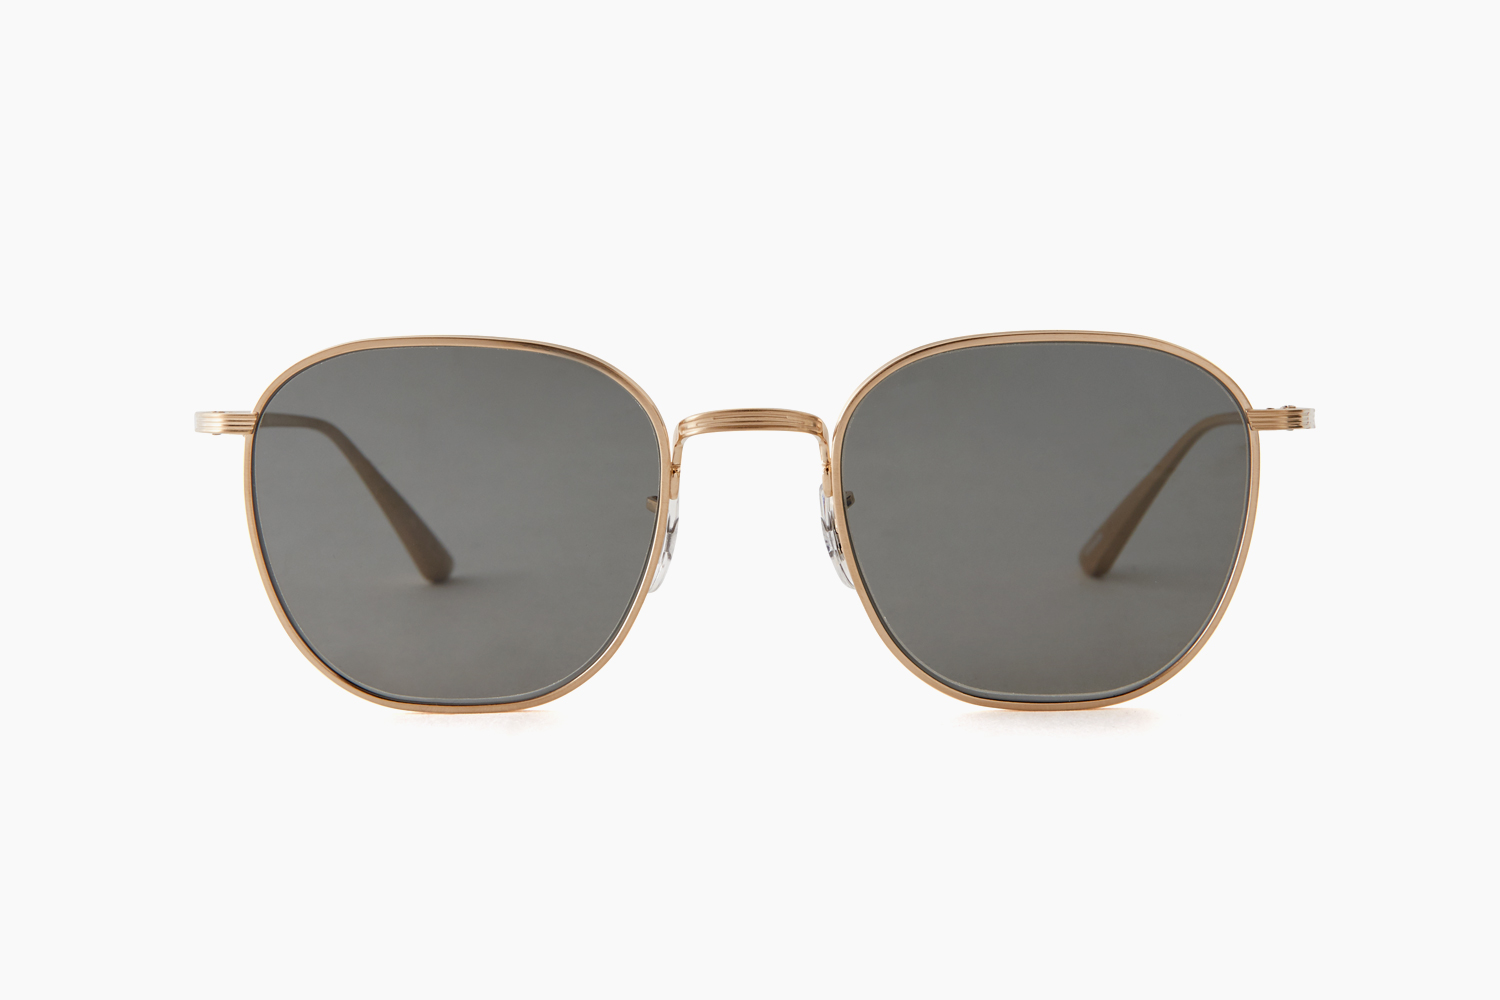 OLIVER PEOPLES THE ROW Board Meeting 2 - Antique Gold OLIVER PEOPLES